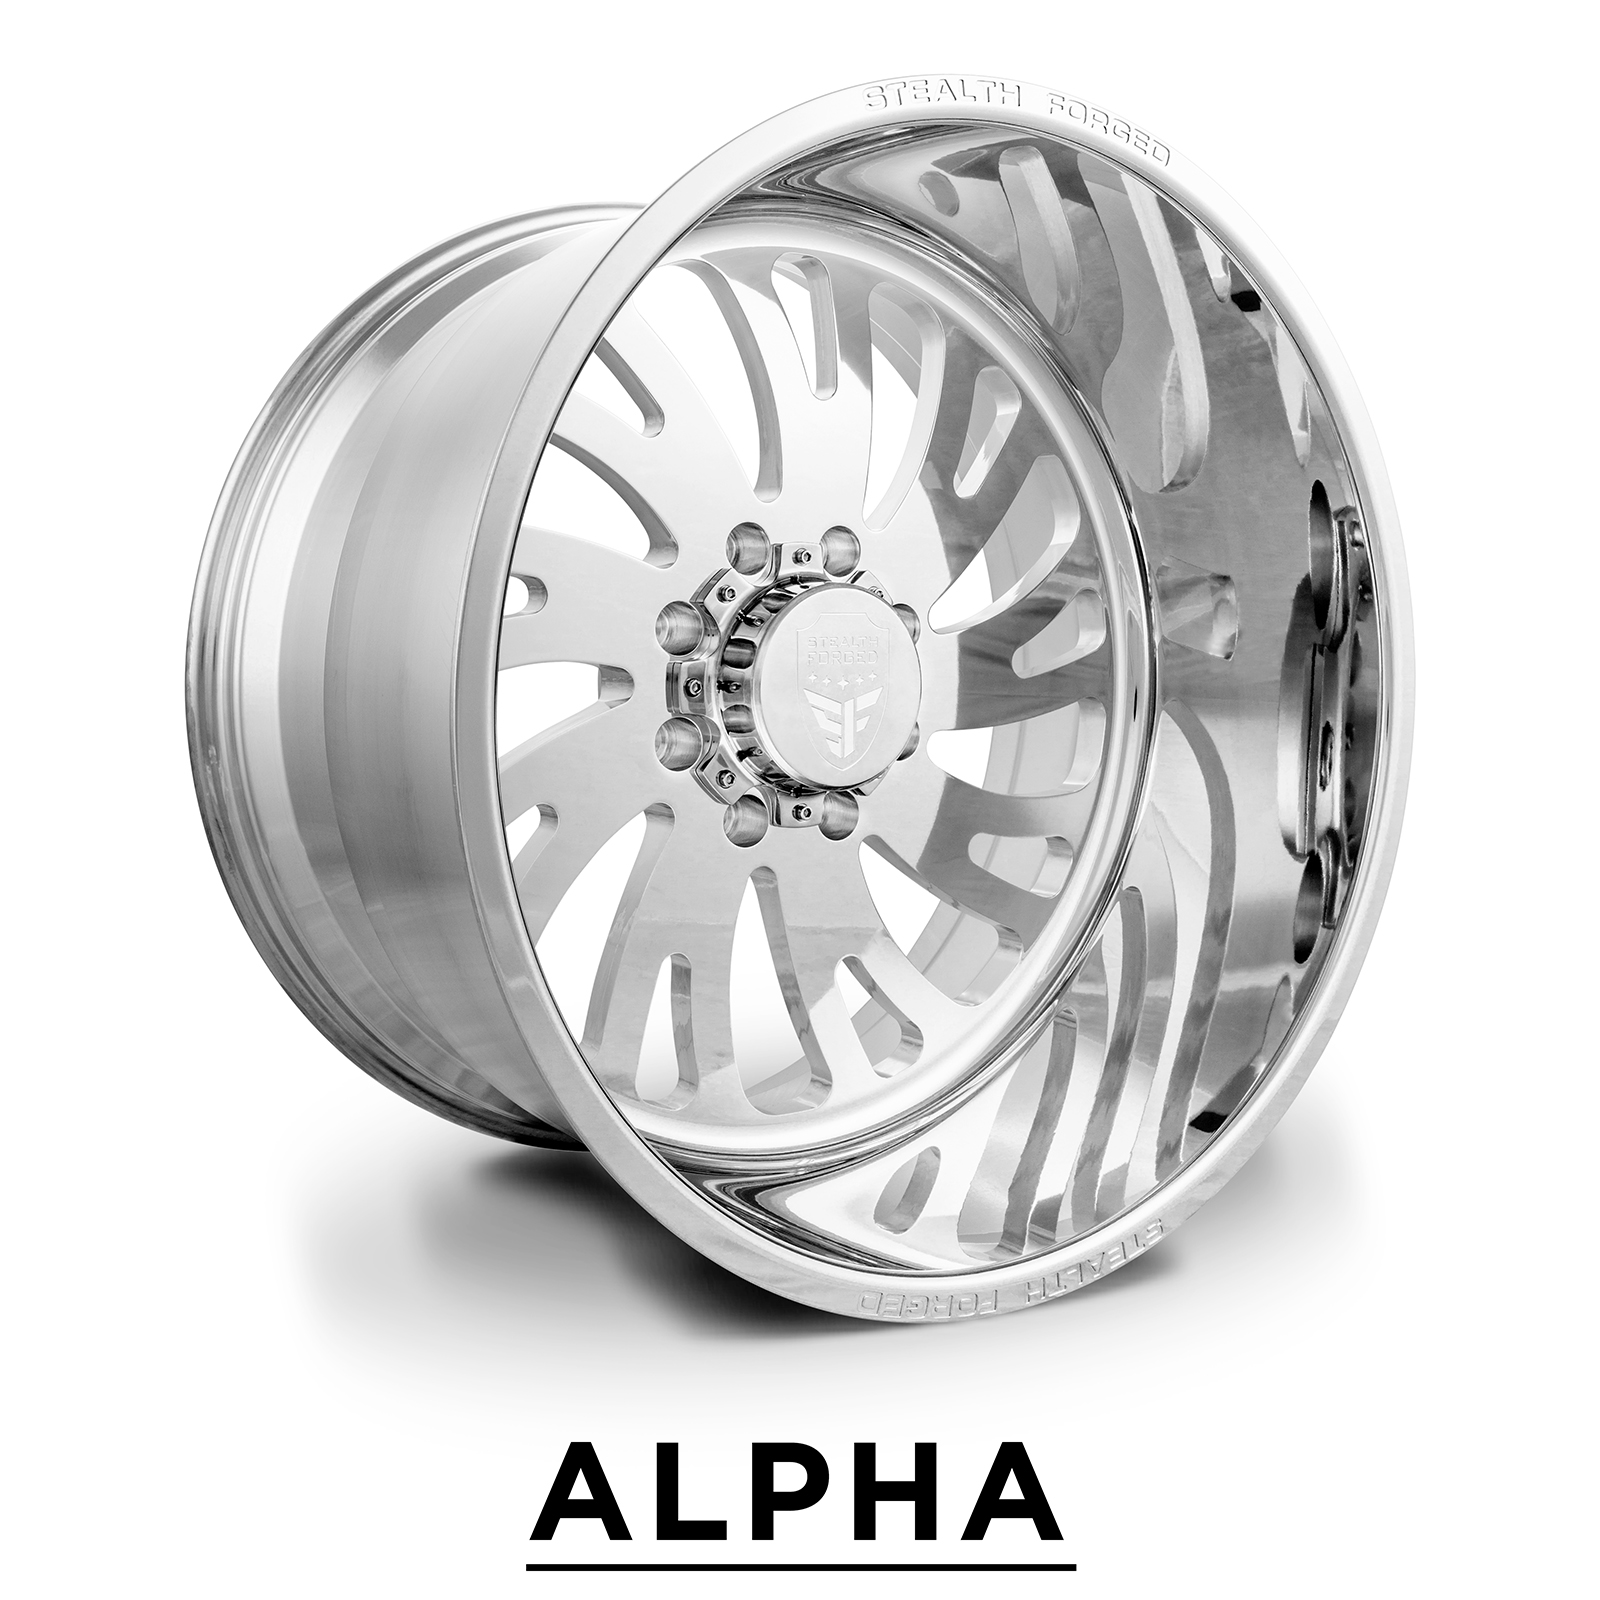 ALPHA | forged polish | 22x12, 24x14